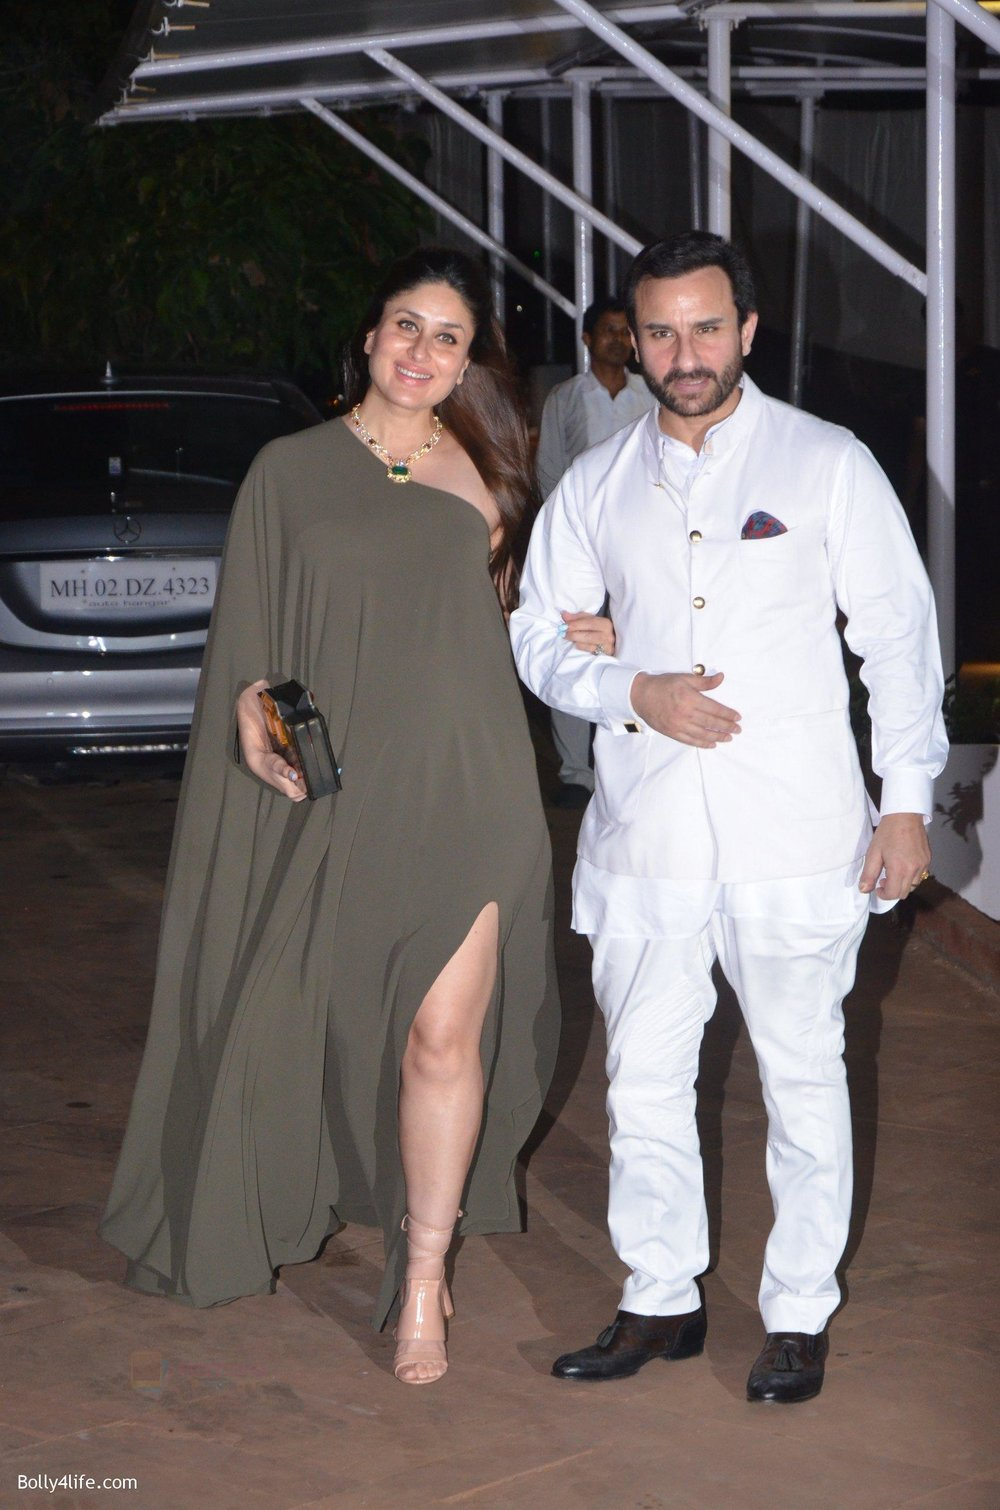 Saif-Ali-Khan-Kareena-Kapoor-at-Reema-jain-bday-party-in-Amadeus-NCPA-on-28th-Sept-2016-871.jpg